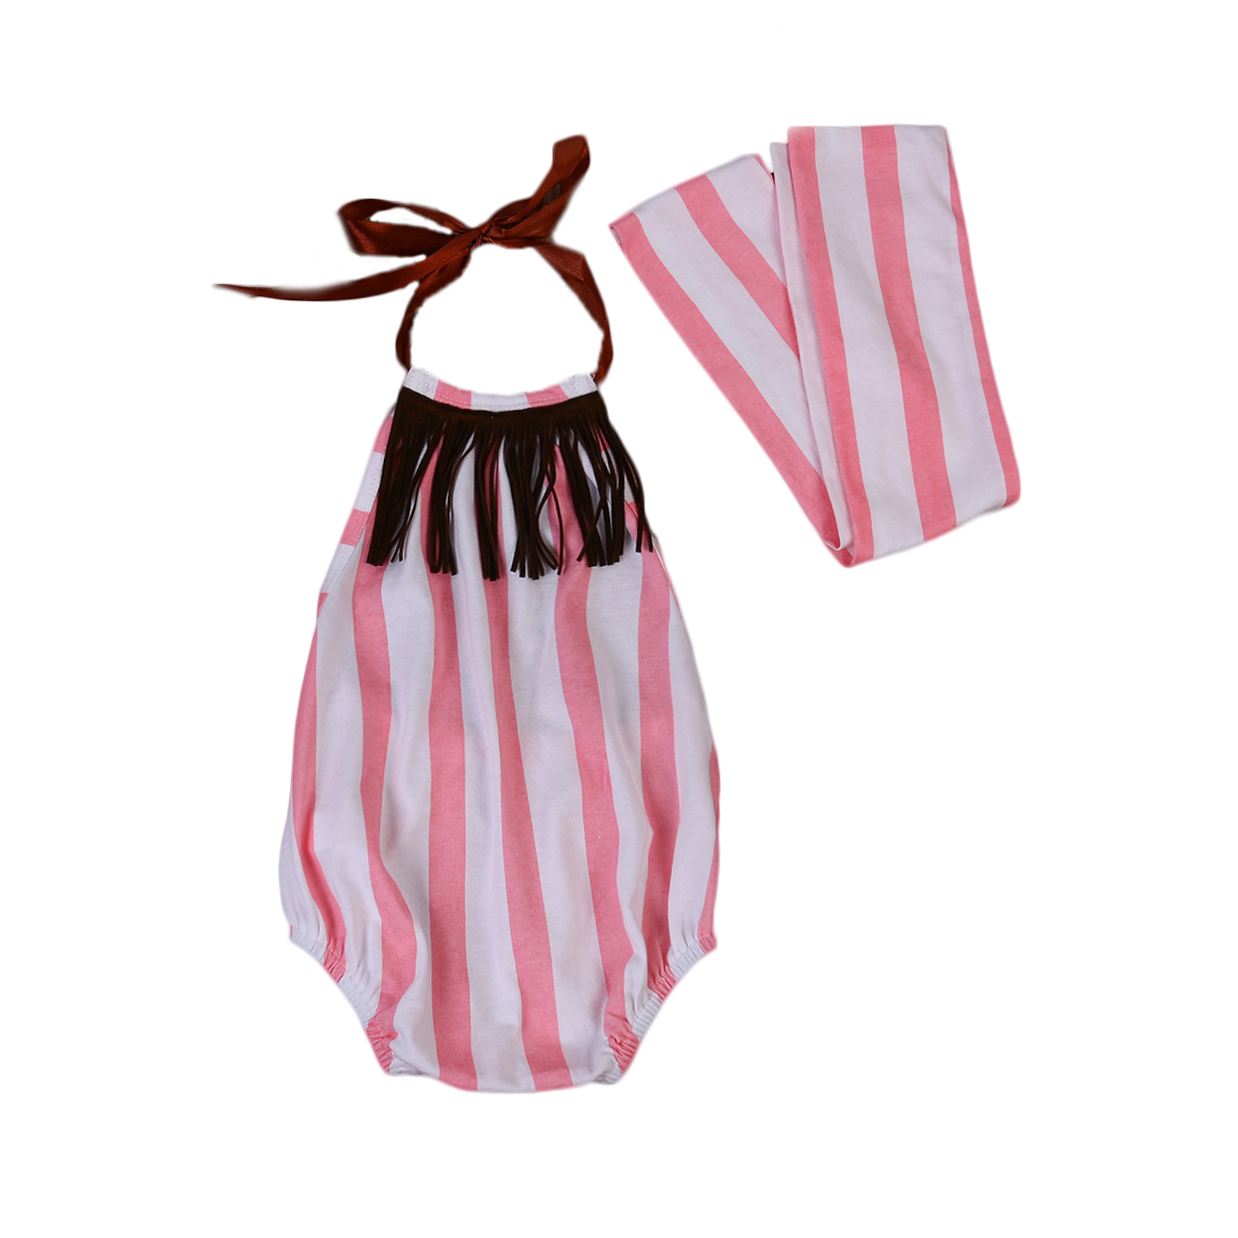 New Style Newborn Baby Girls Clothes Summer Sleeveless Rompers Floral Jumpsuit Headband Outfits Sunsuit Baby Clothing